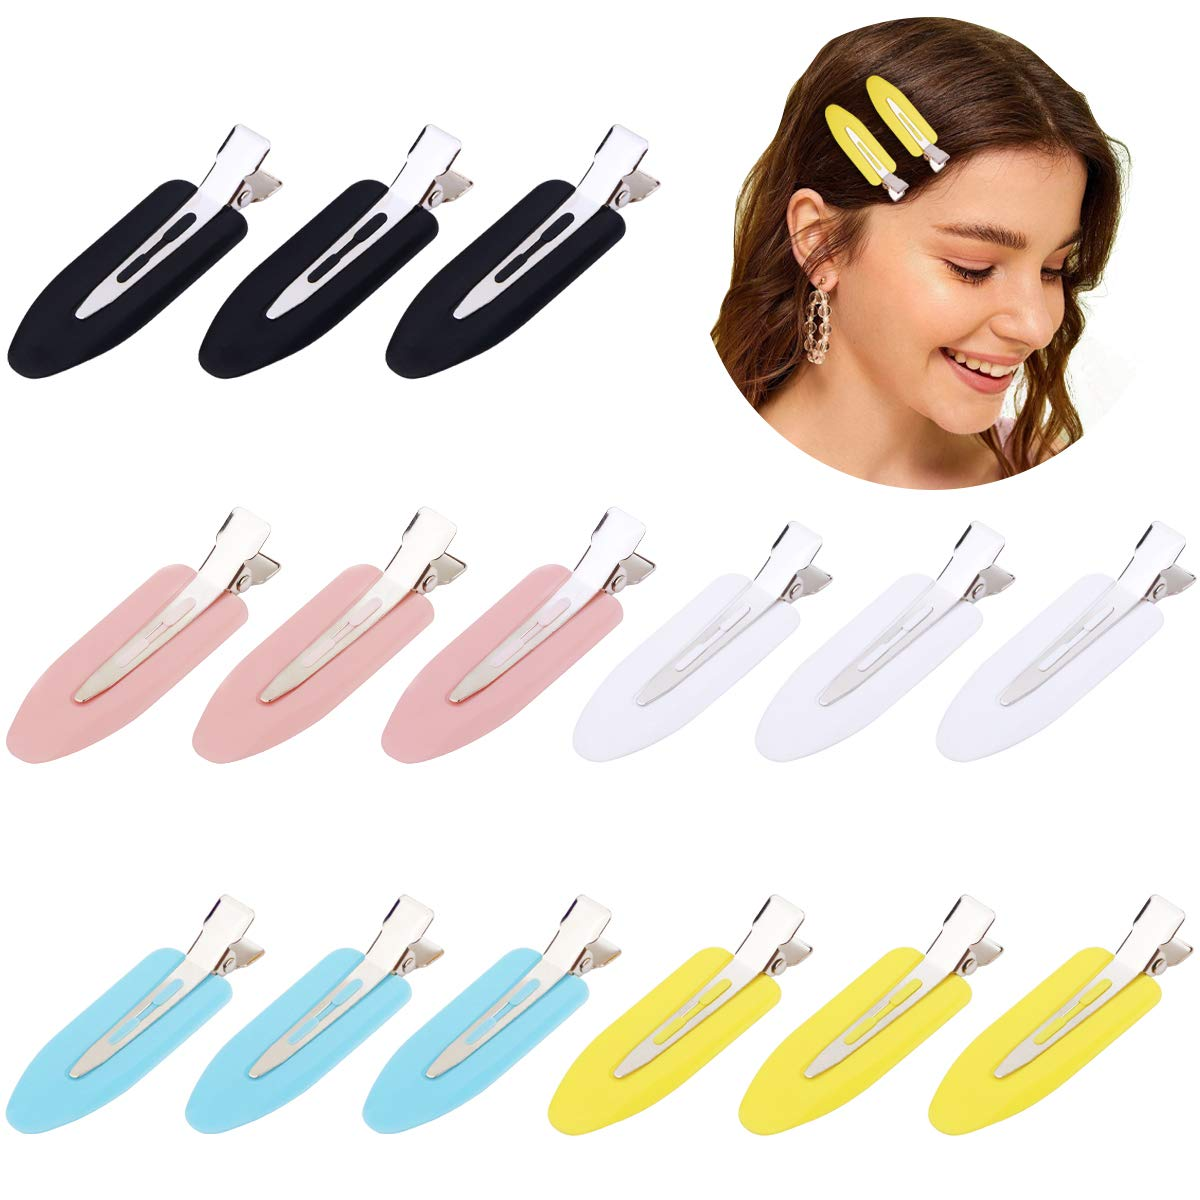 15 Pieces 2.4 inch No Bend Hair Clips, No Crease Hair Clips, Styling Clips for Hairstyle, Curl Pin Clips for Makeup, Bangs Hair Clips for Women and Girls